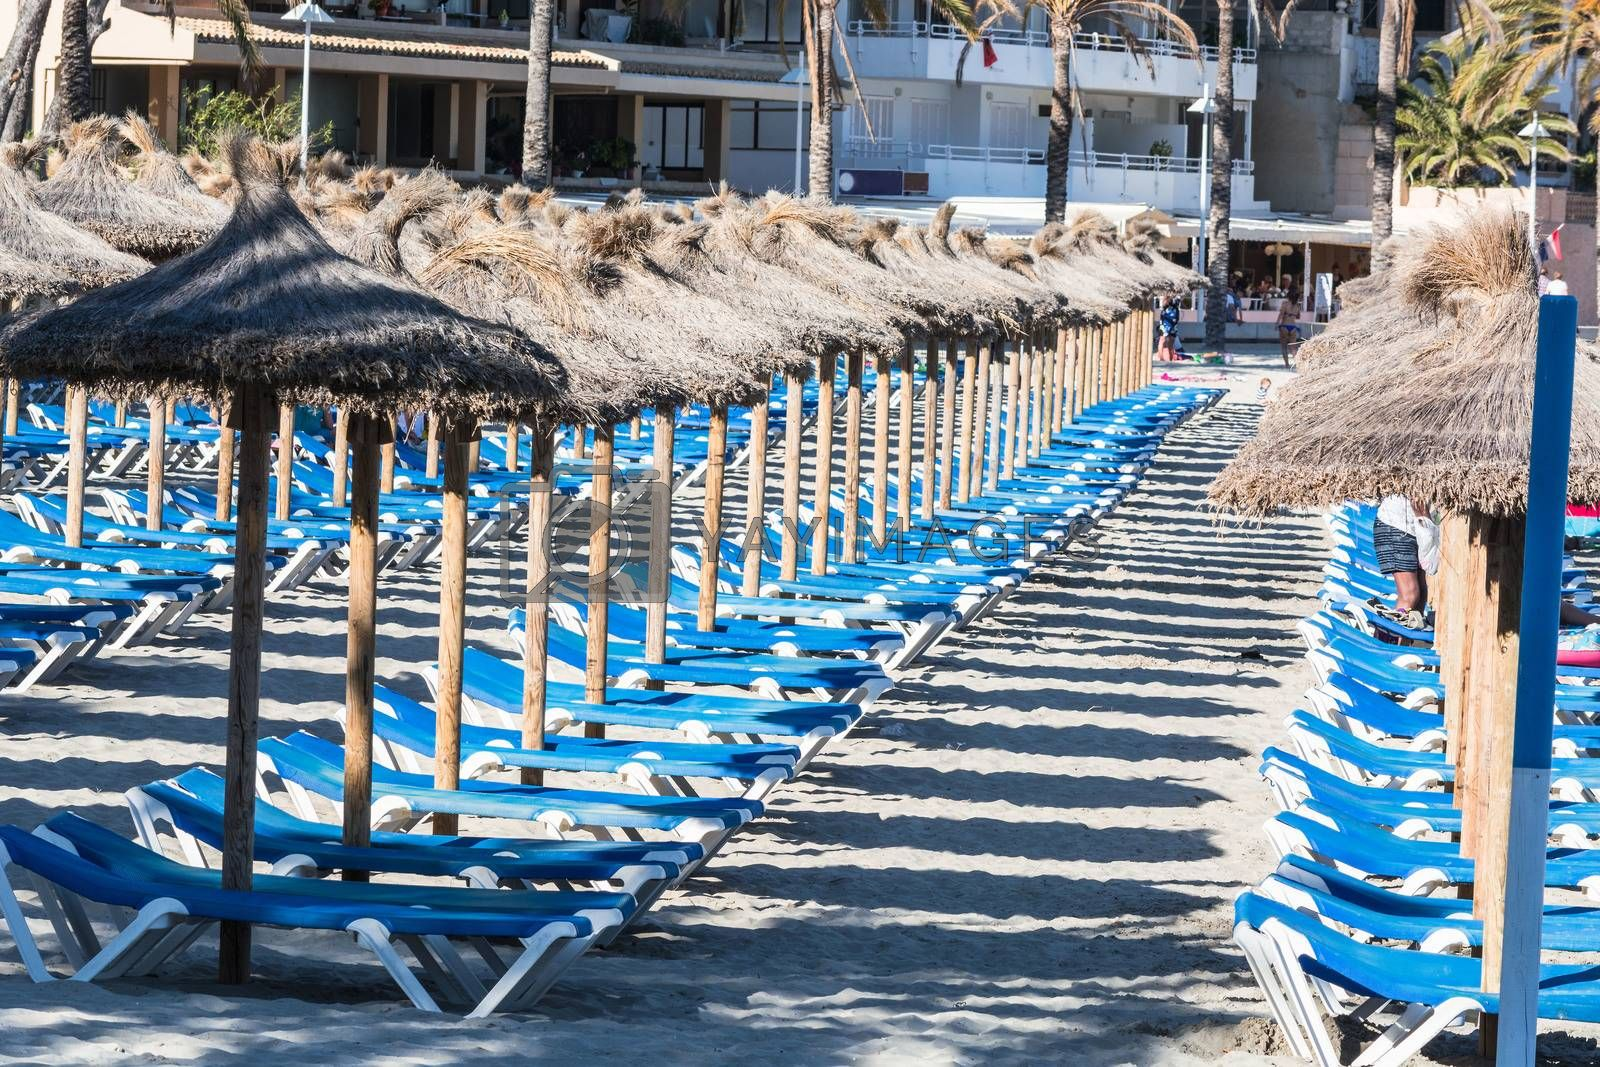 Sun loungers and parasols at the tropical resort. Line of lounge chairs. Blue sea and sky in the background. Summer holidays concept.